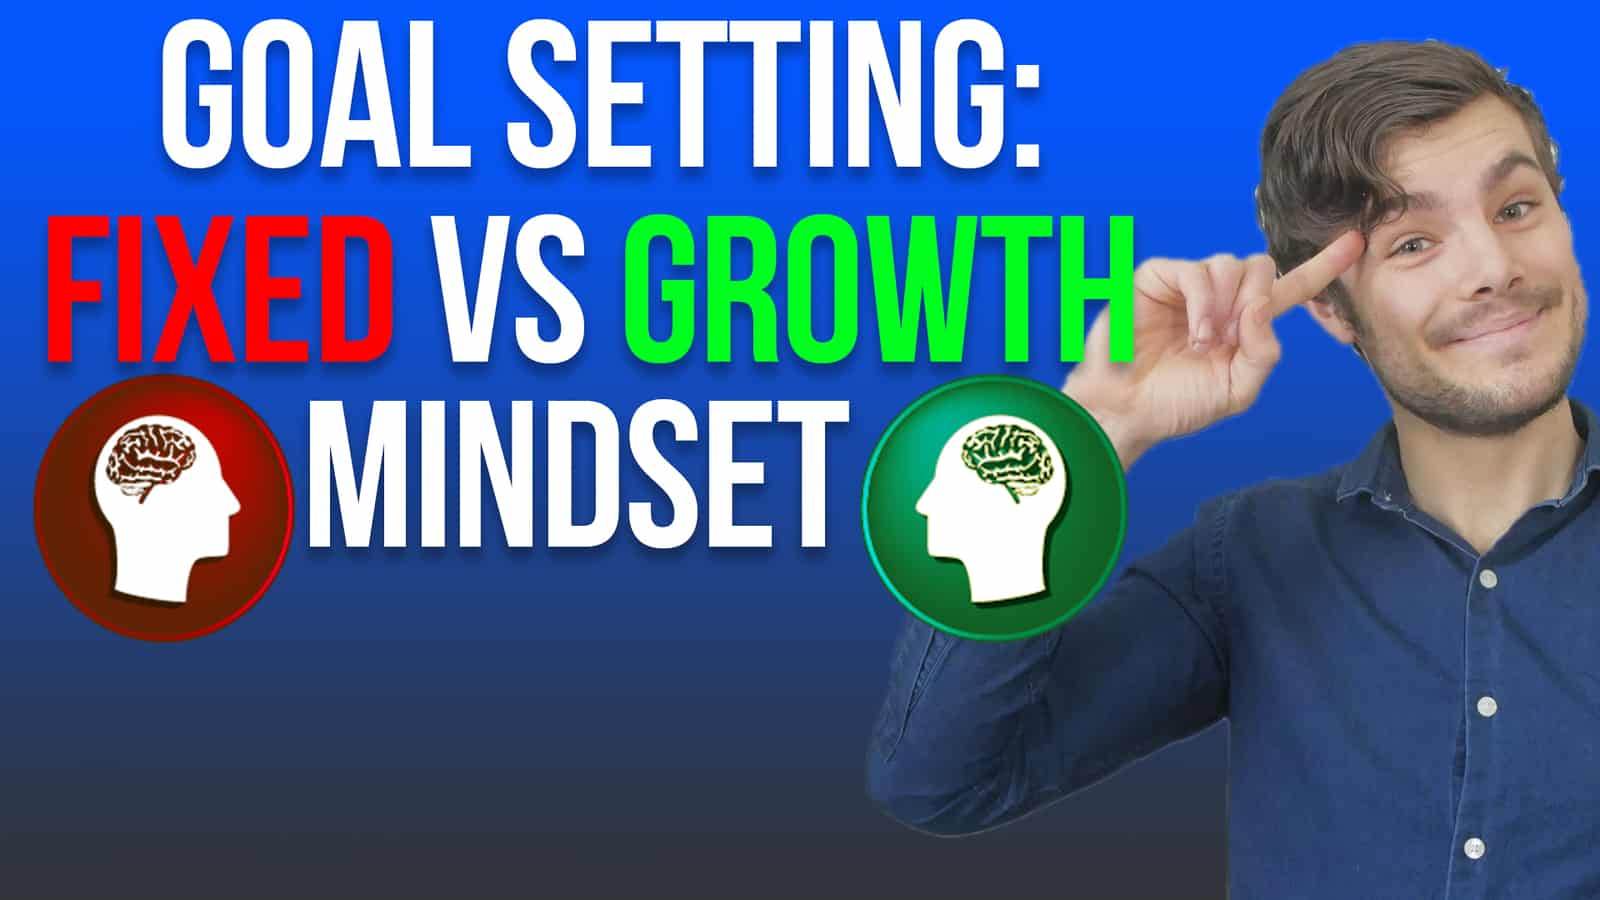 goal setting fixed vs growth mindset